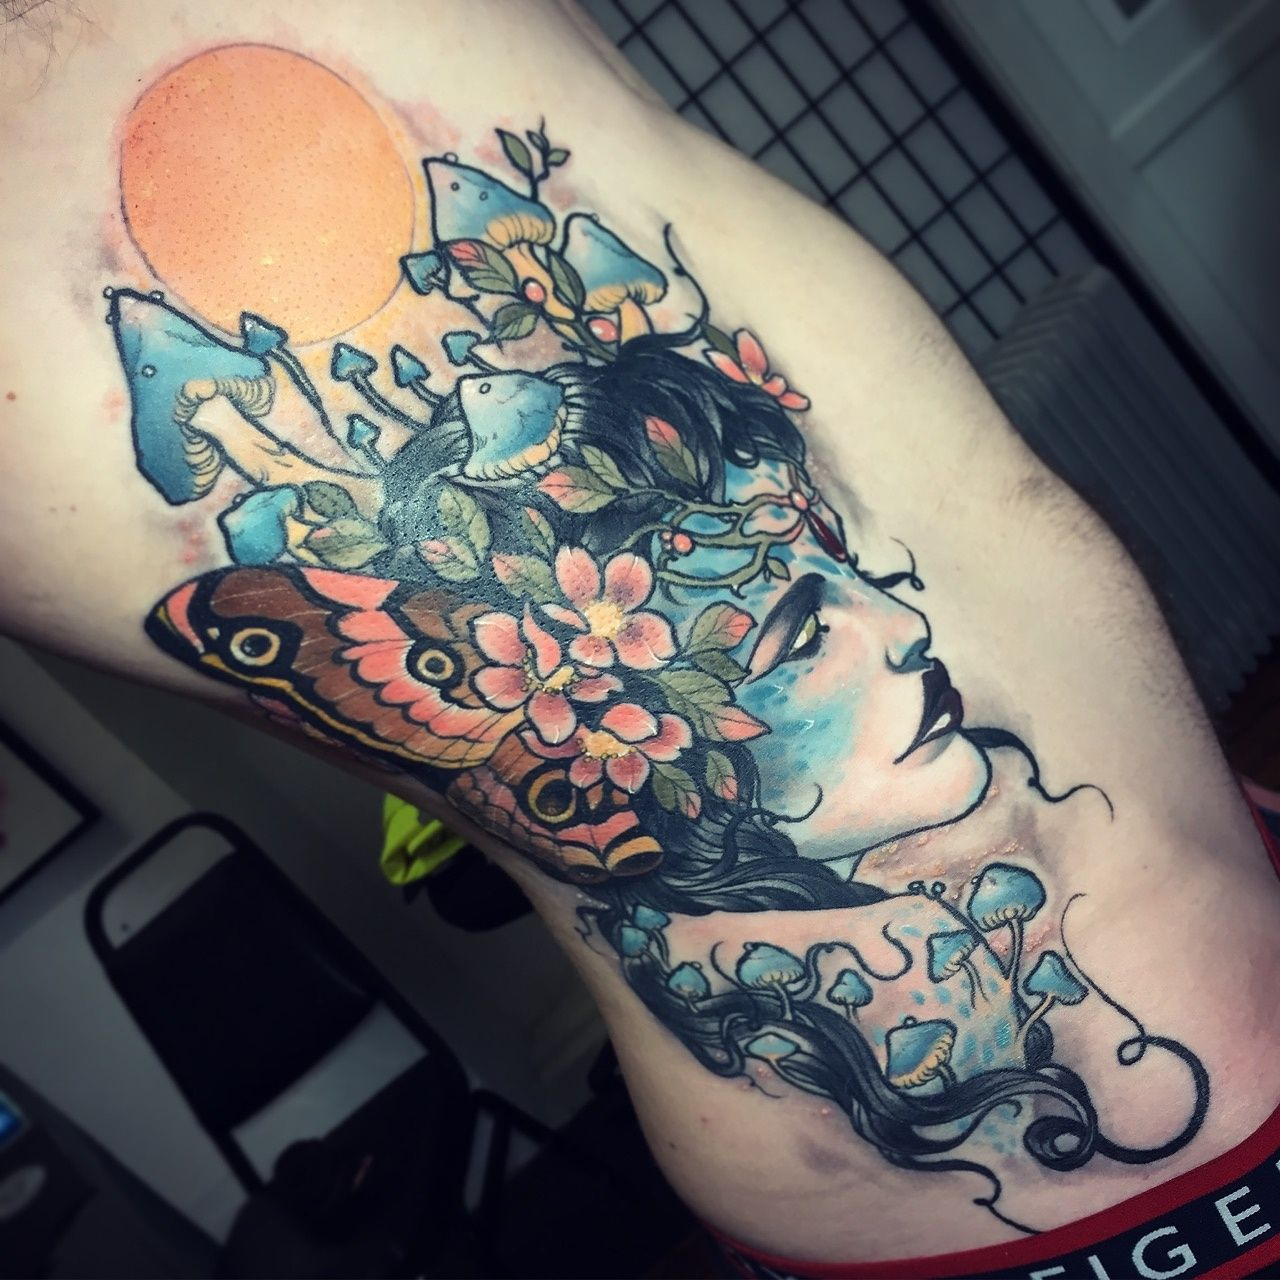 Mother Nature By Dean Kalcoff At Dark Cloud Electric In